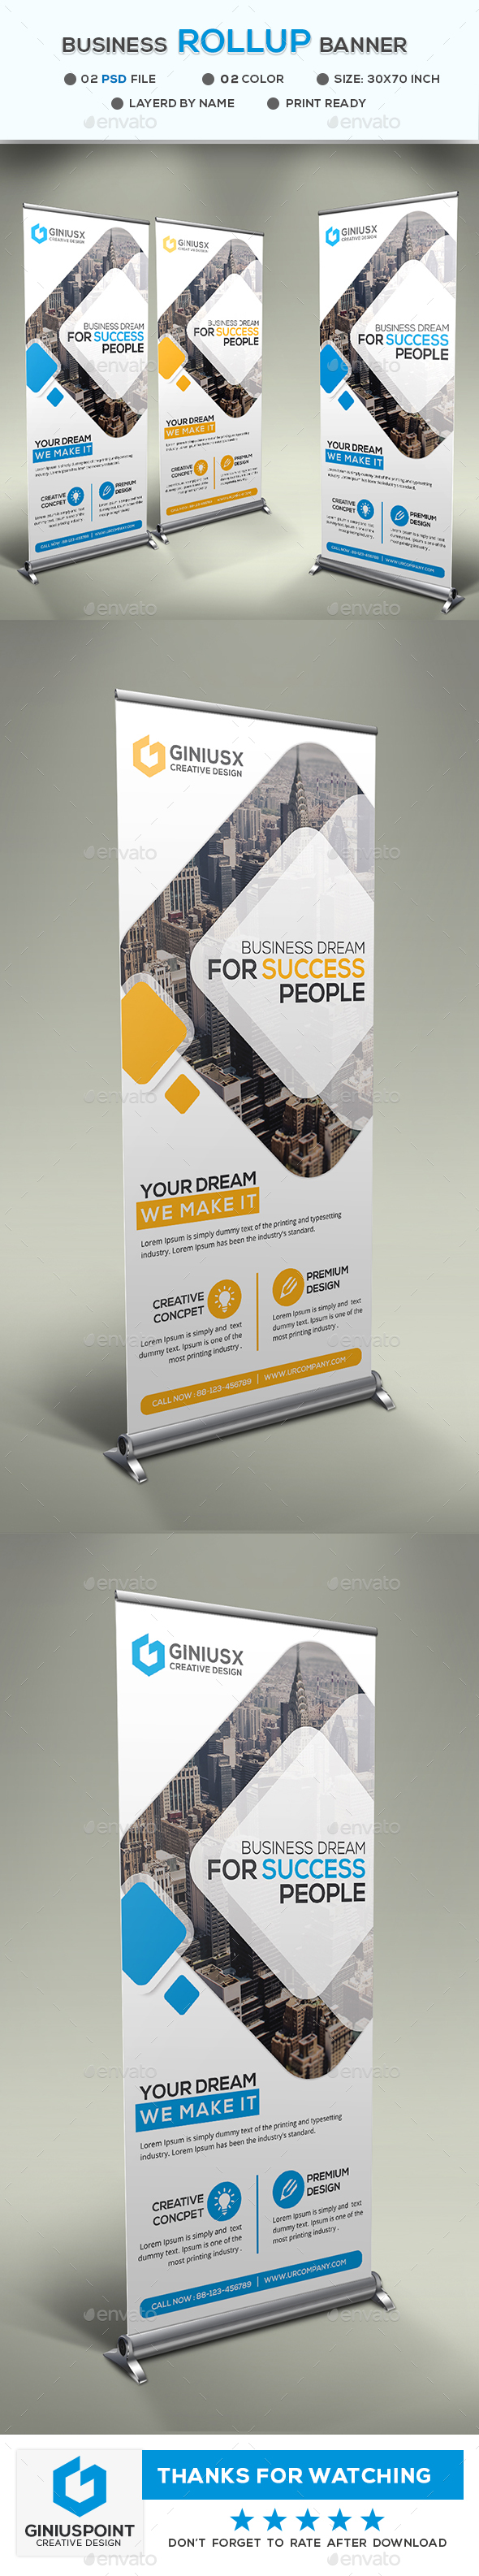 Business Rollup Banner - Signage Print Templates